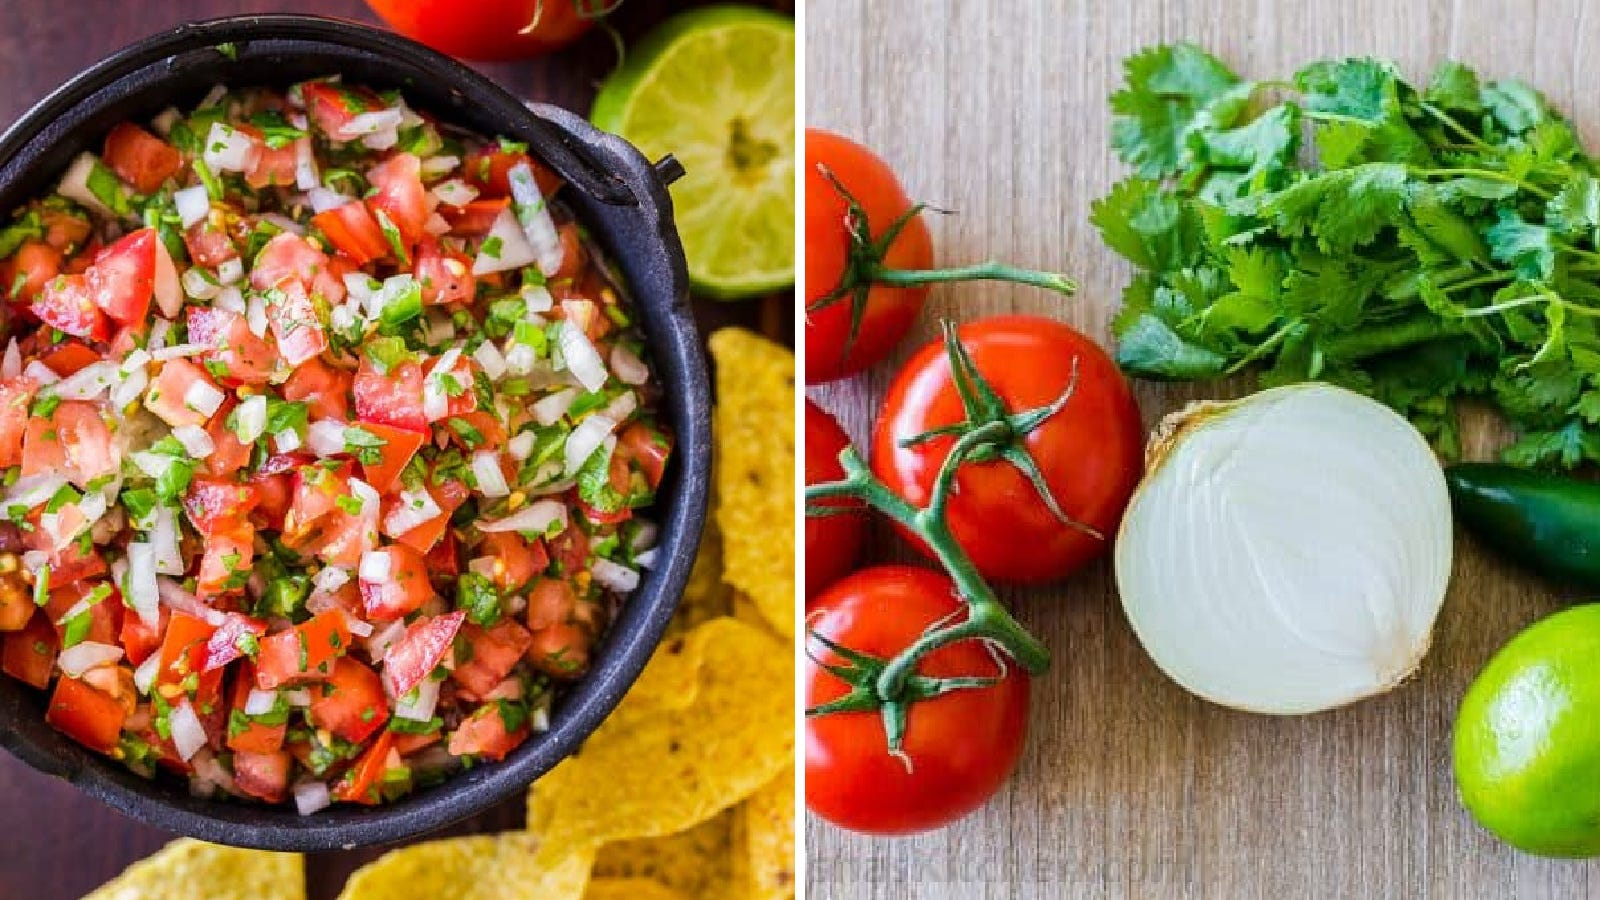 Two images: The left image features fresh pico de gallo with a side of tortilla chips and the right image features various ingredients used to make the pico de gallo including an onion, vine tomatoes, cilantro, lime and jalapeno.